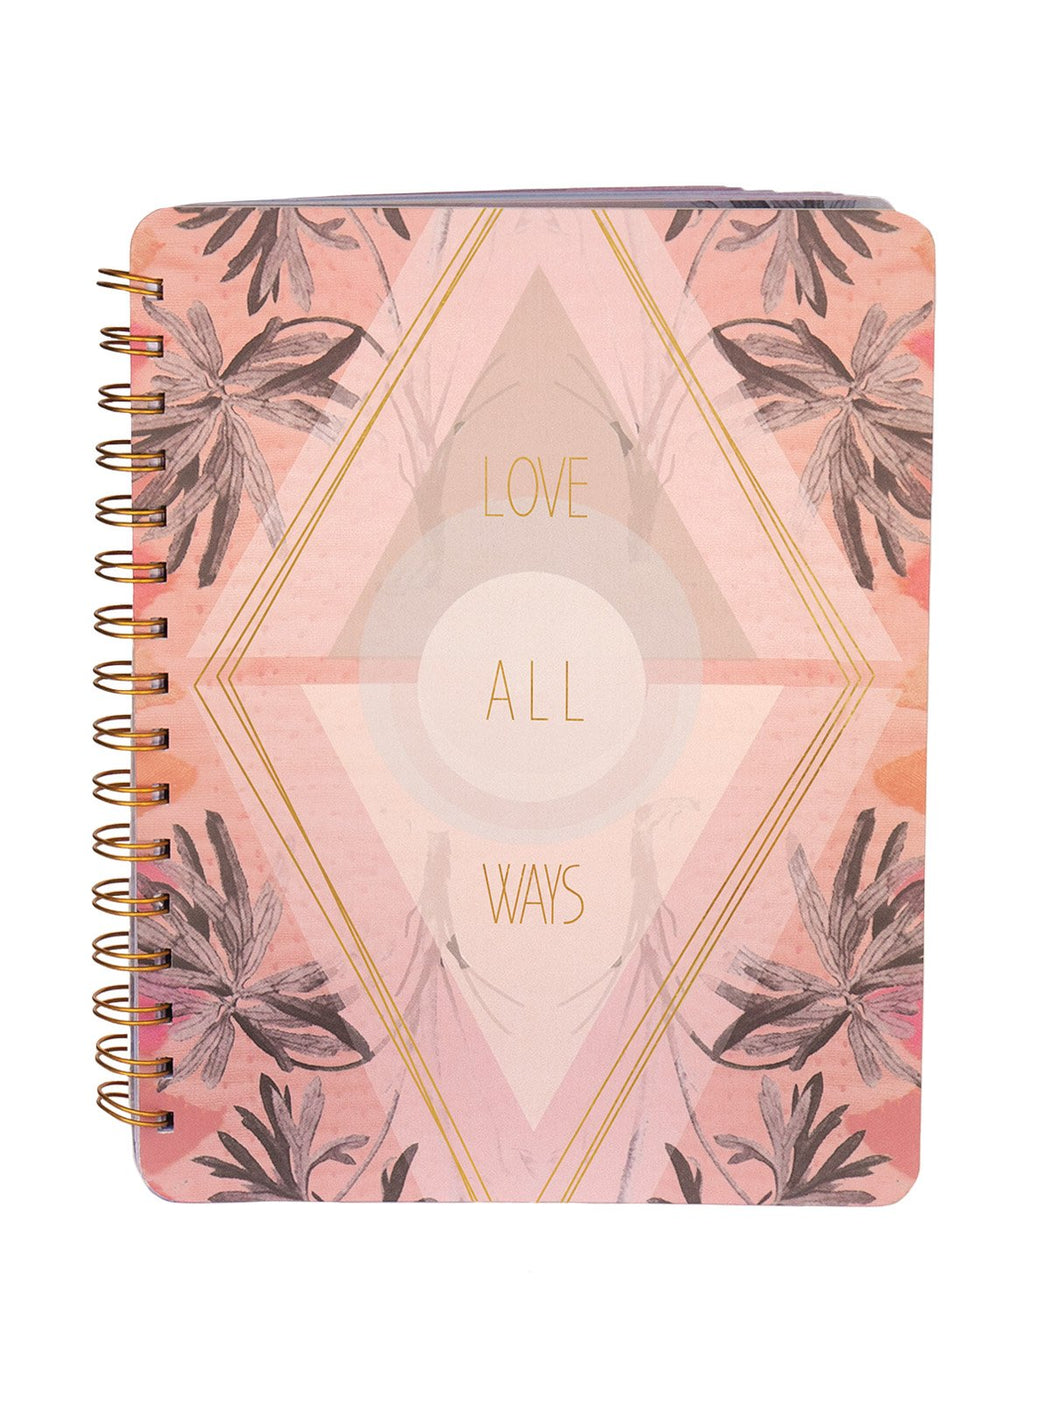 Love All Ways Ring Notebook